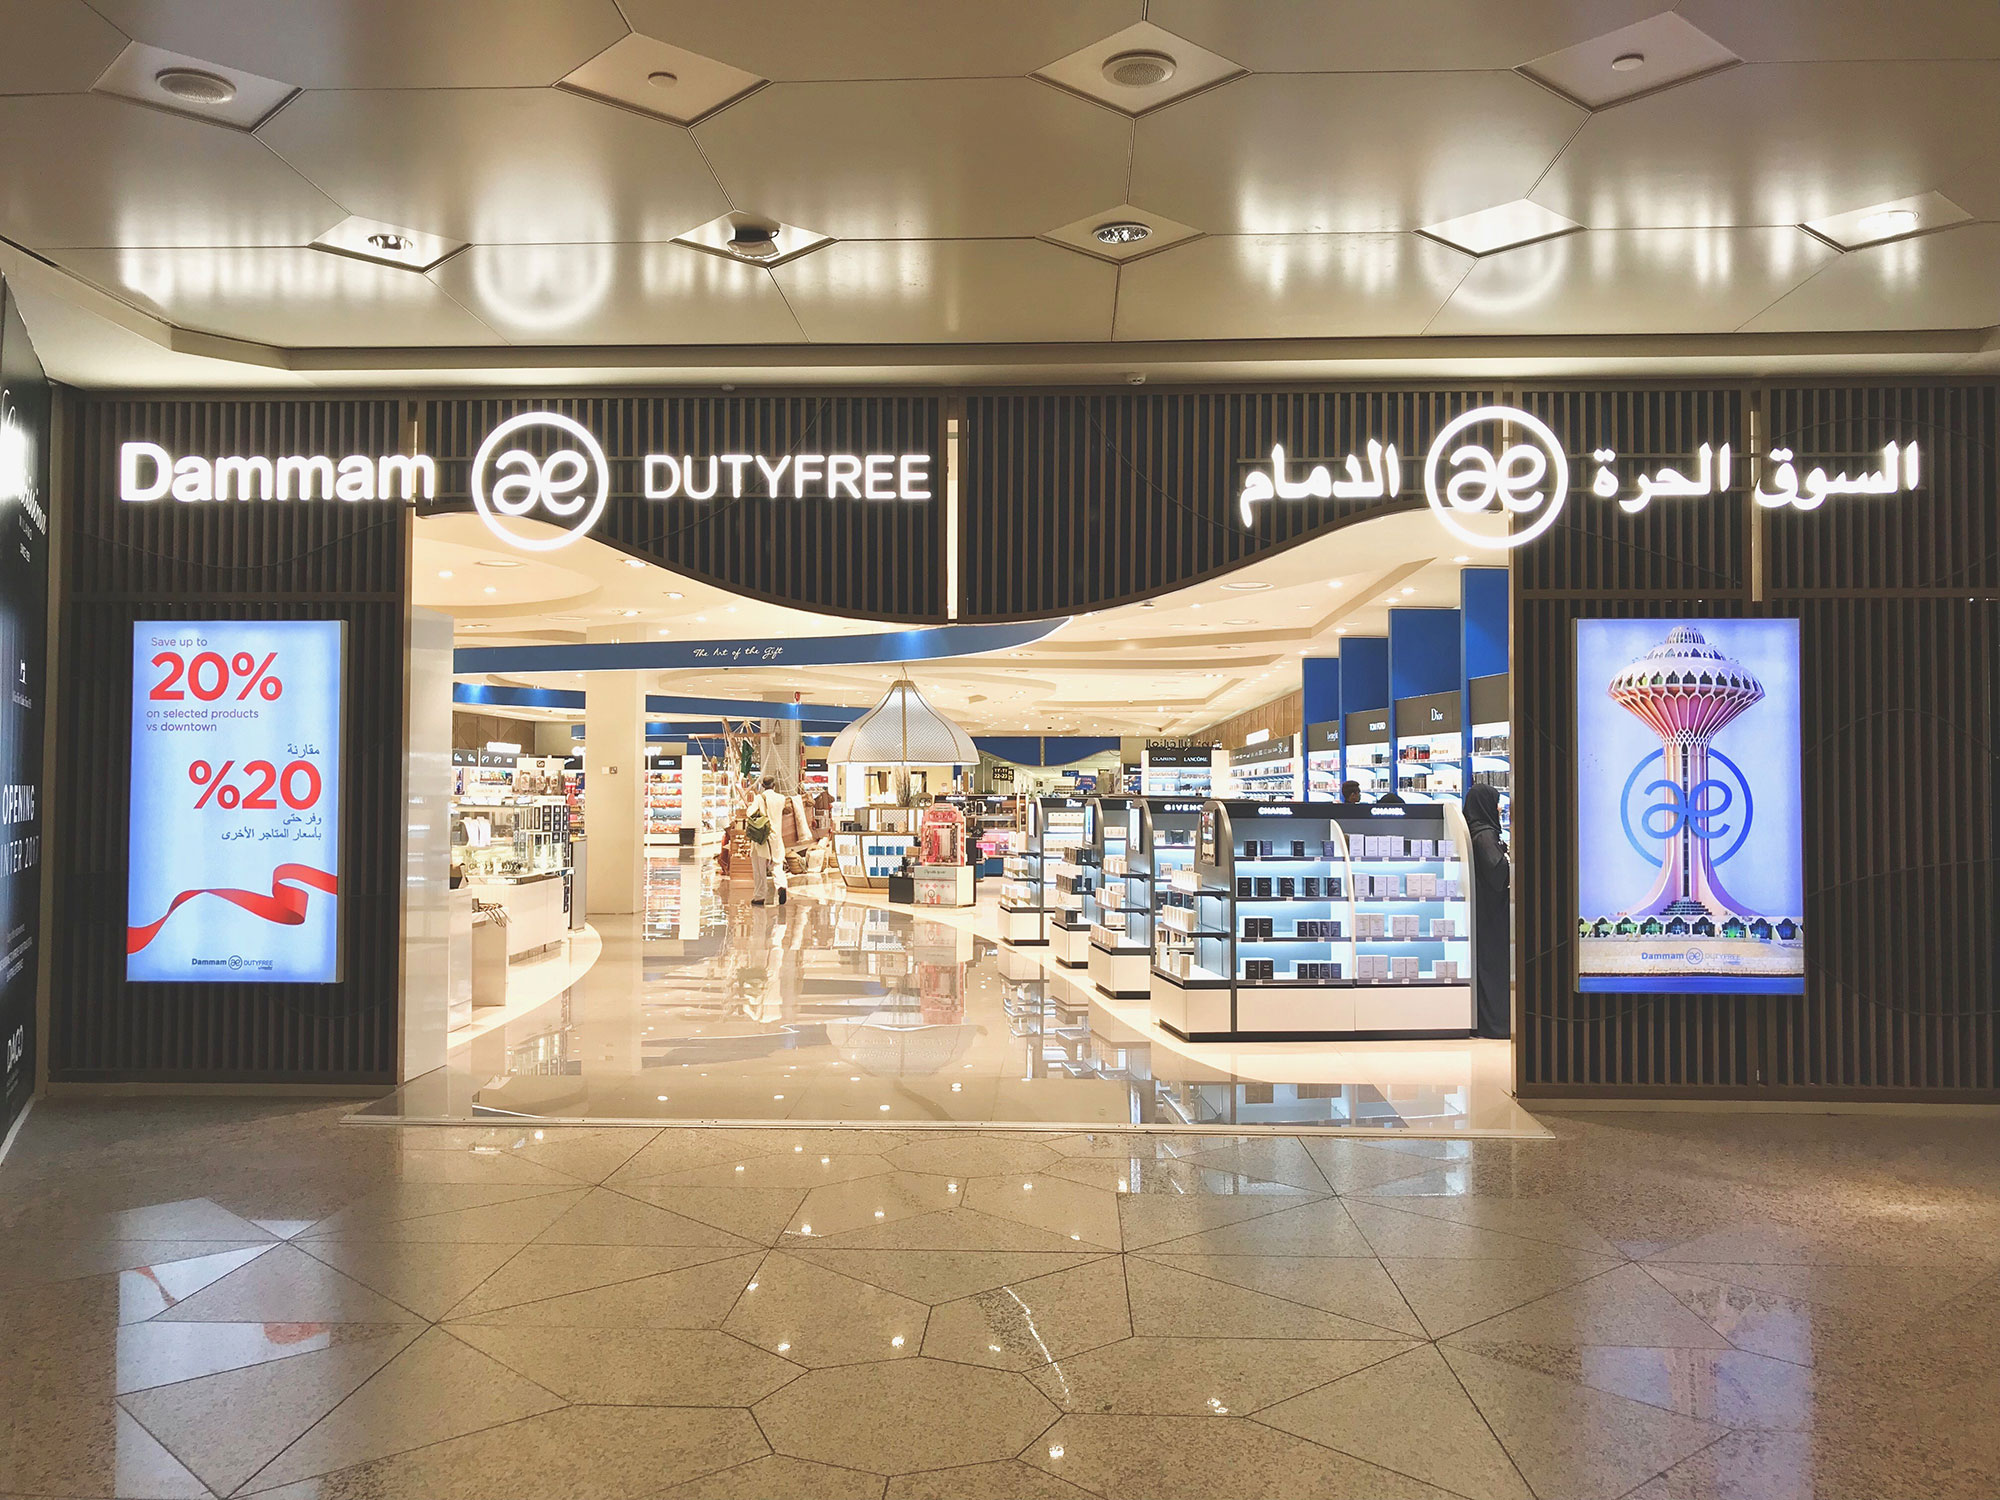 Second point de vente à l'aéroport King Fahd de Dammam